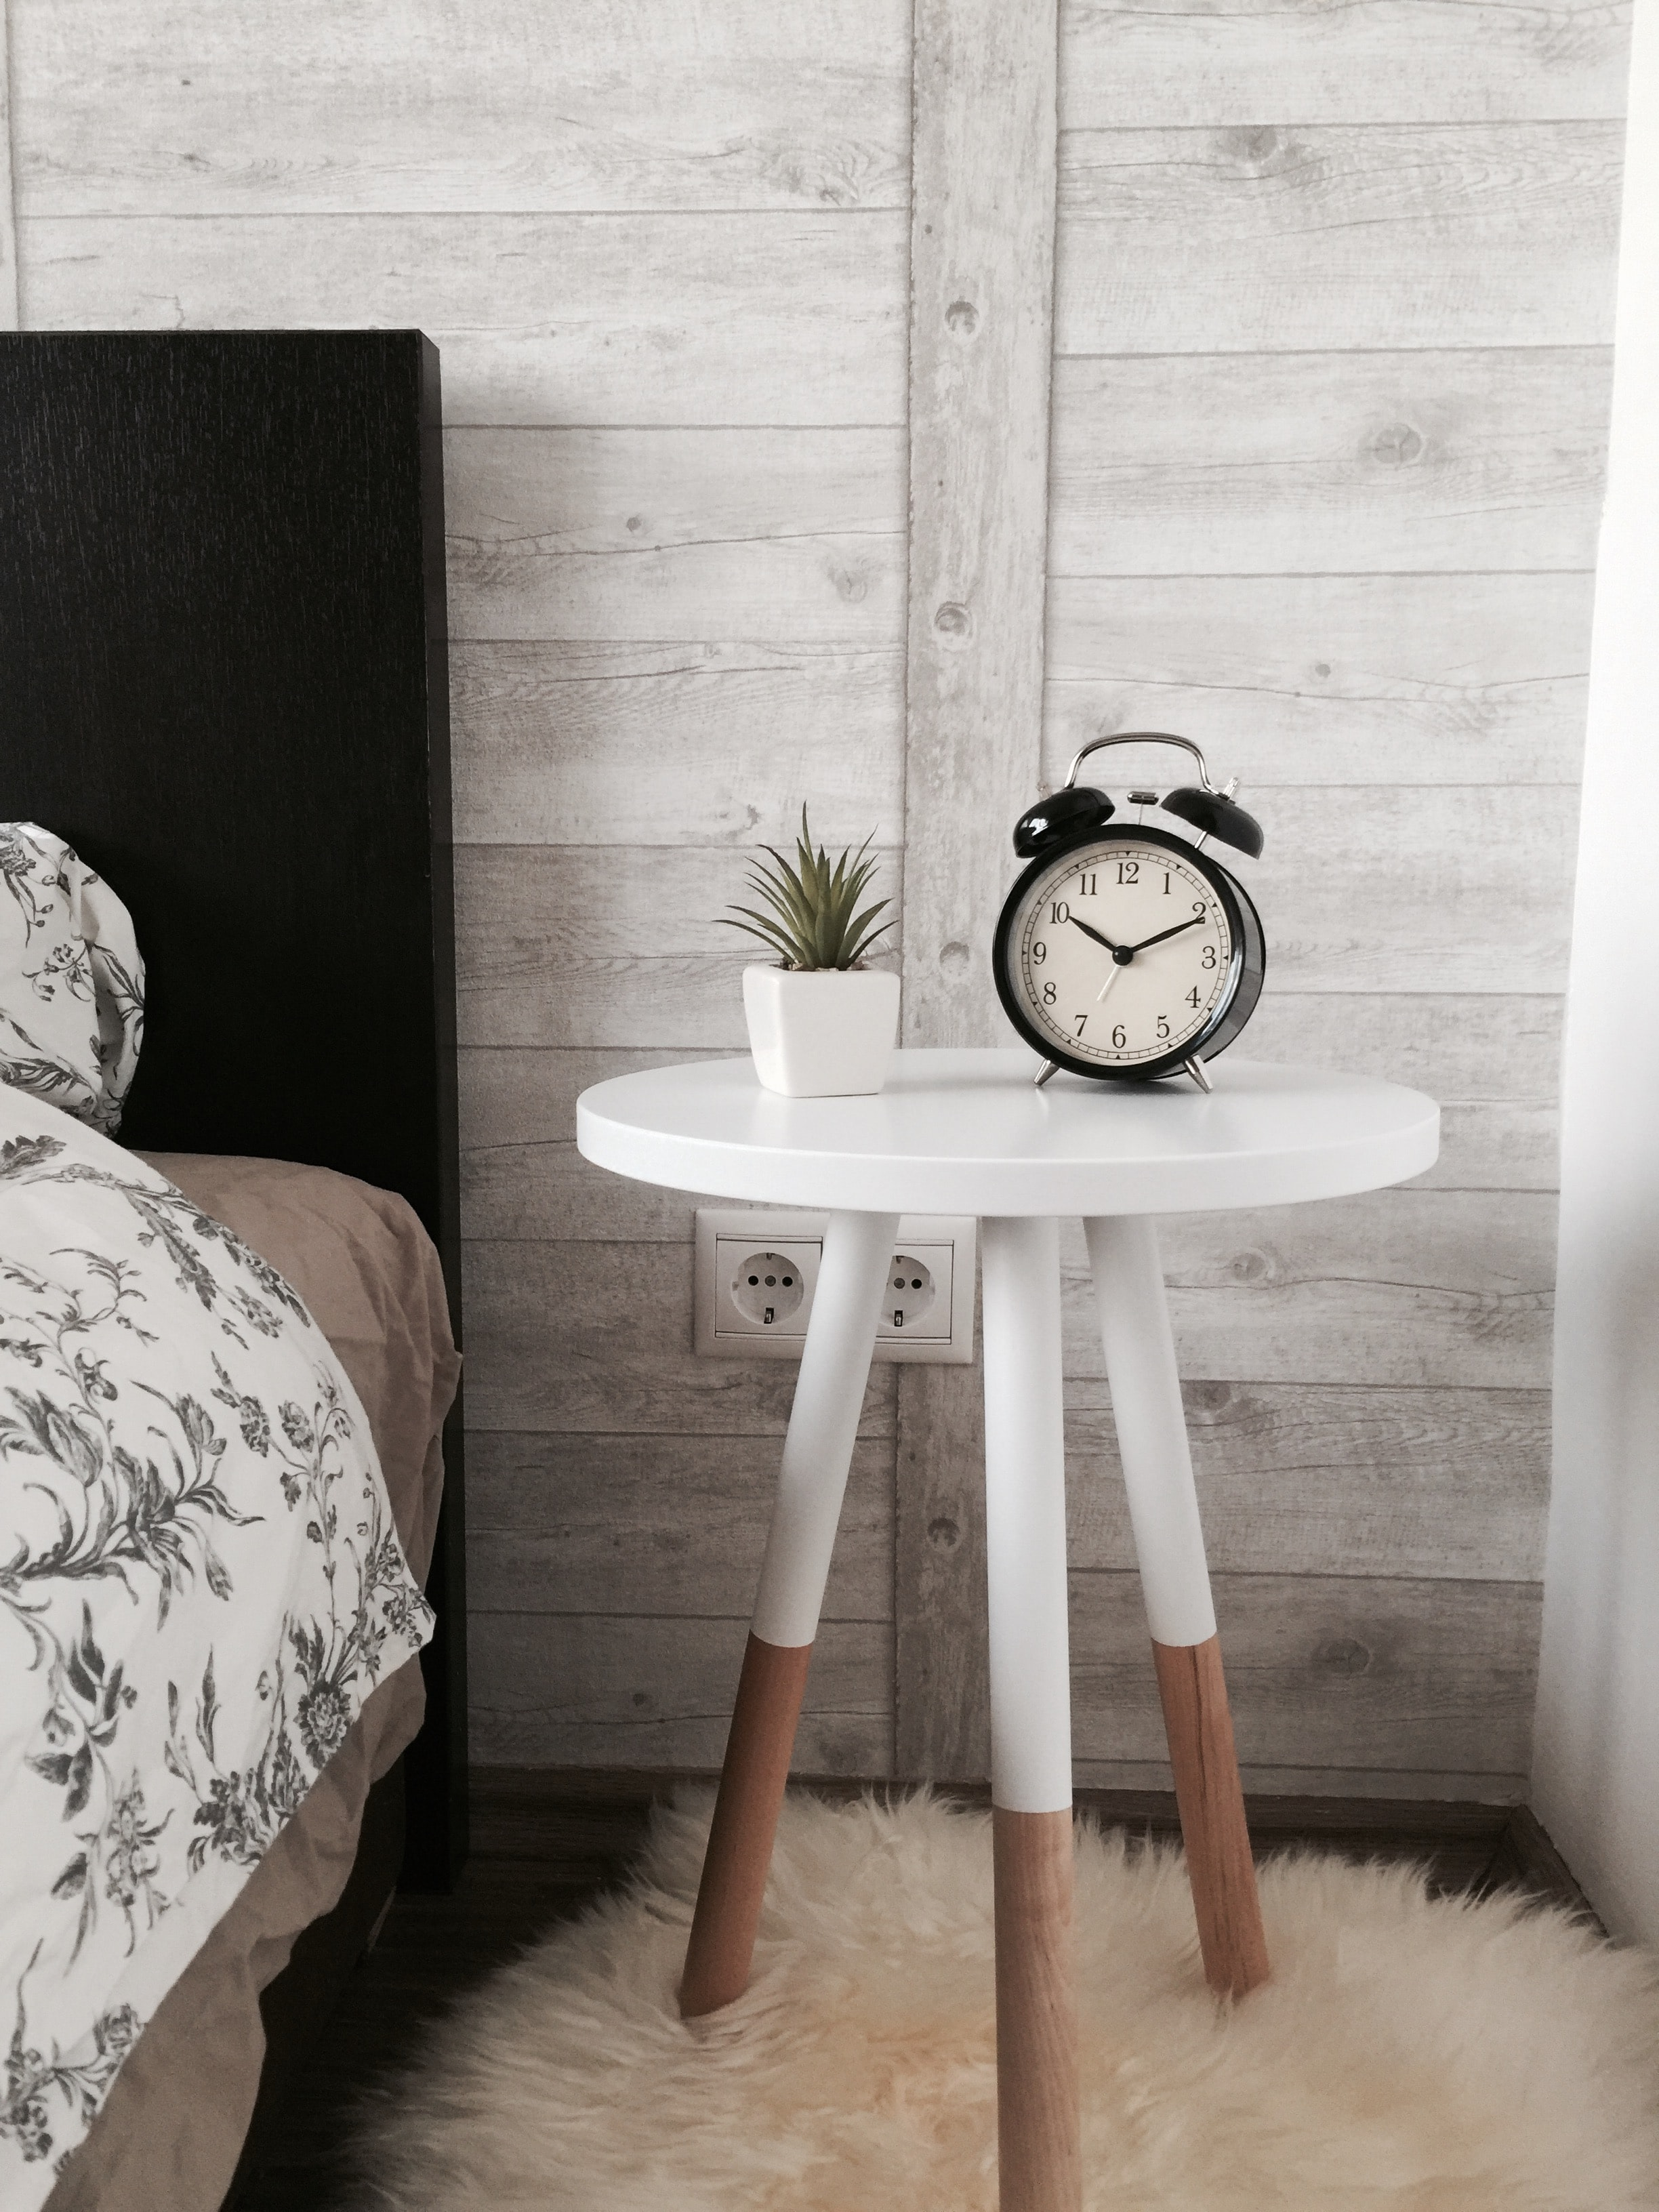 black alarm clock at 10:10 on white wooden table near table